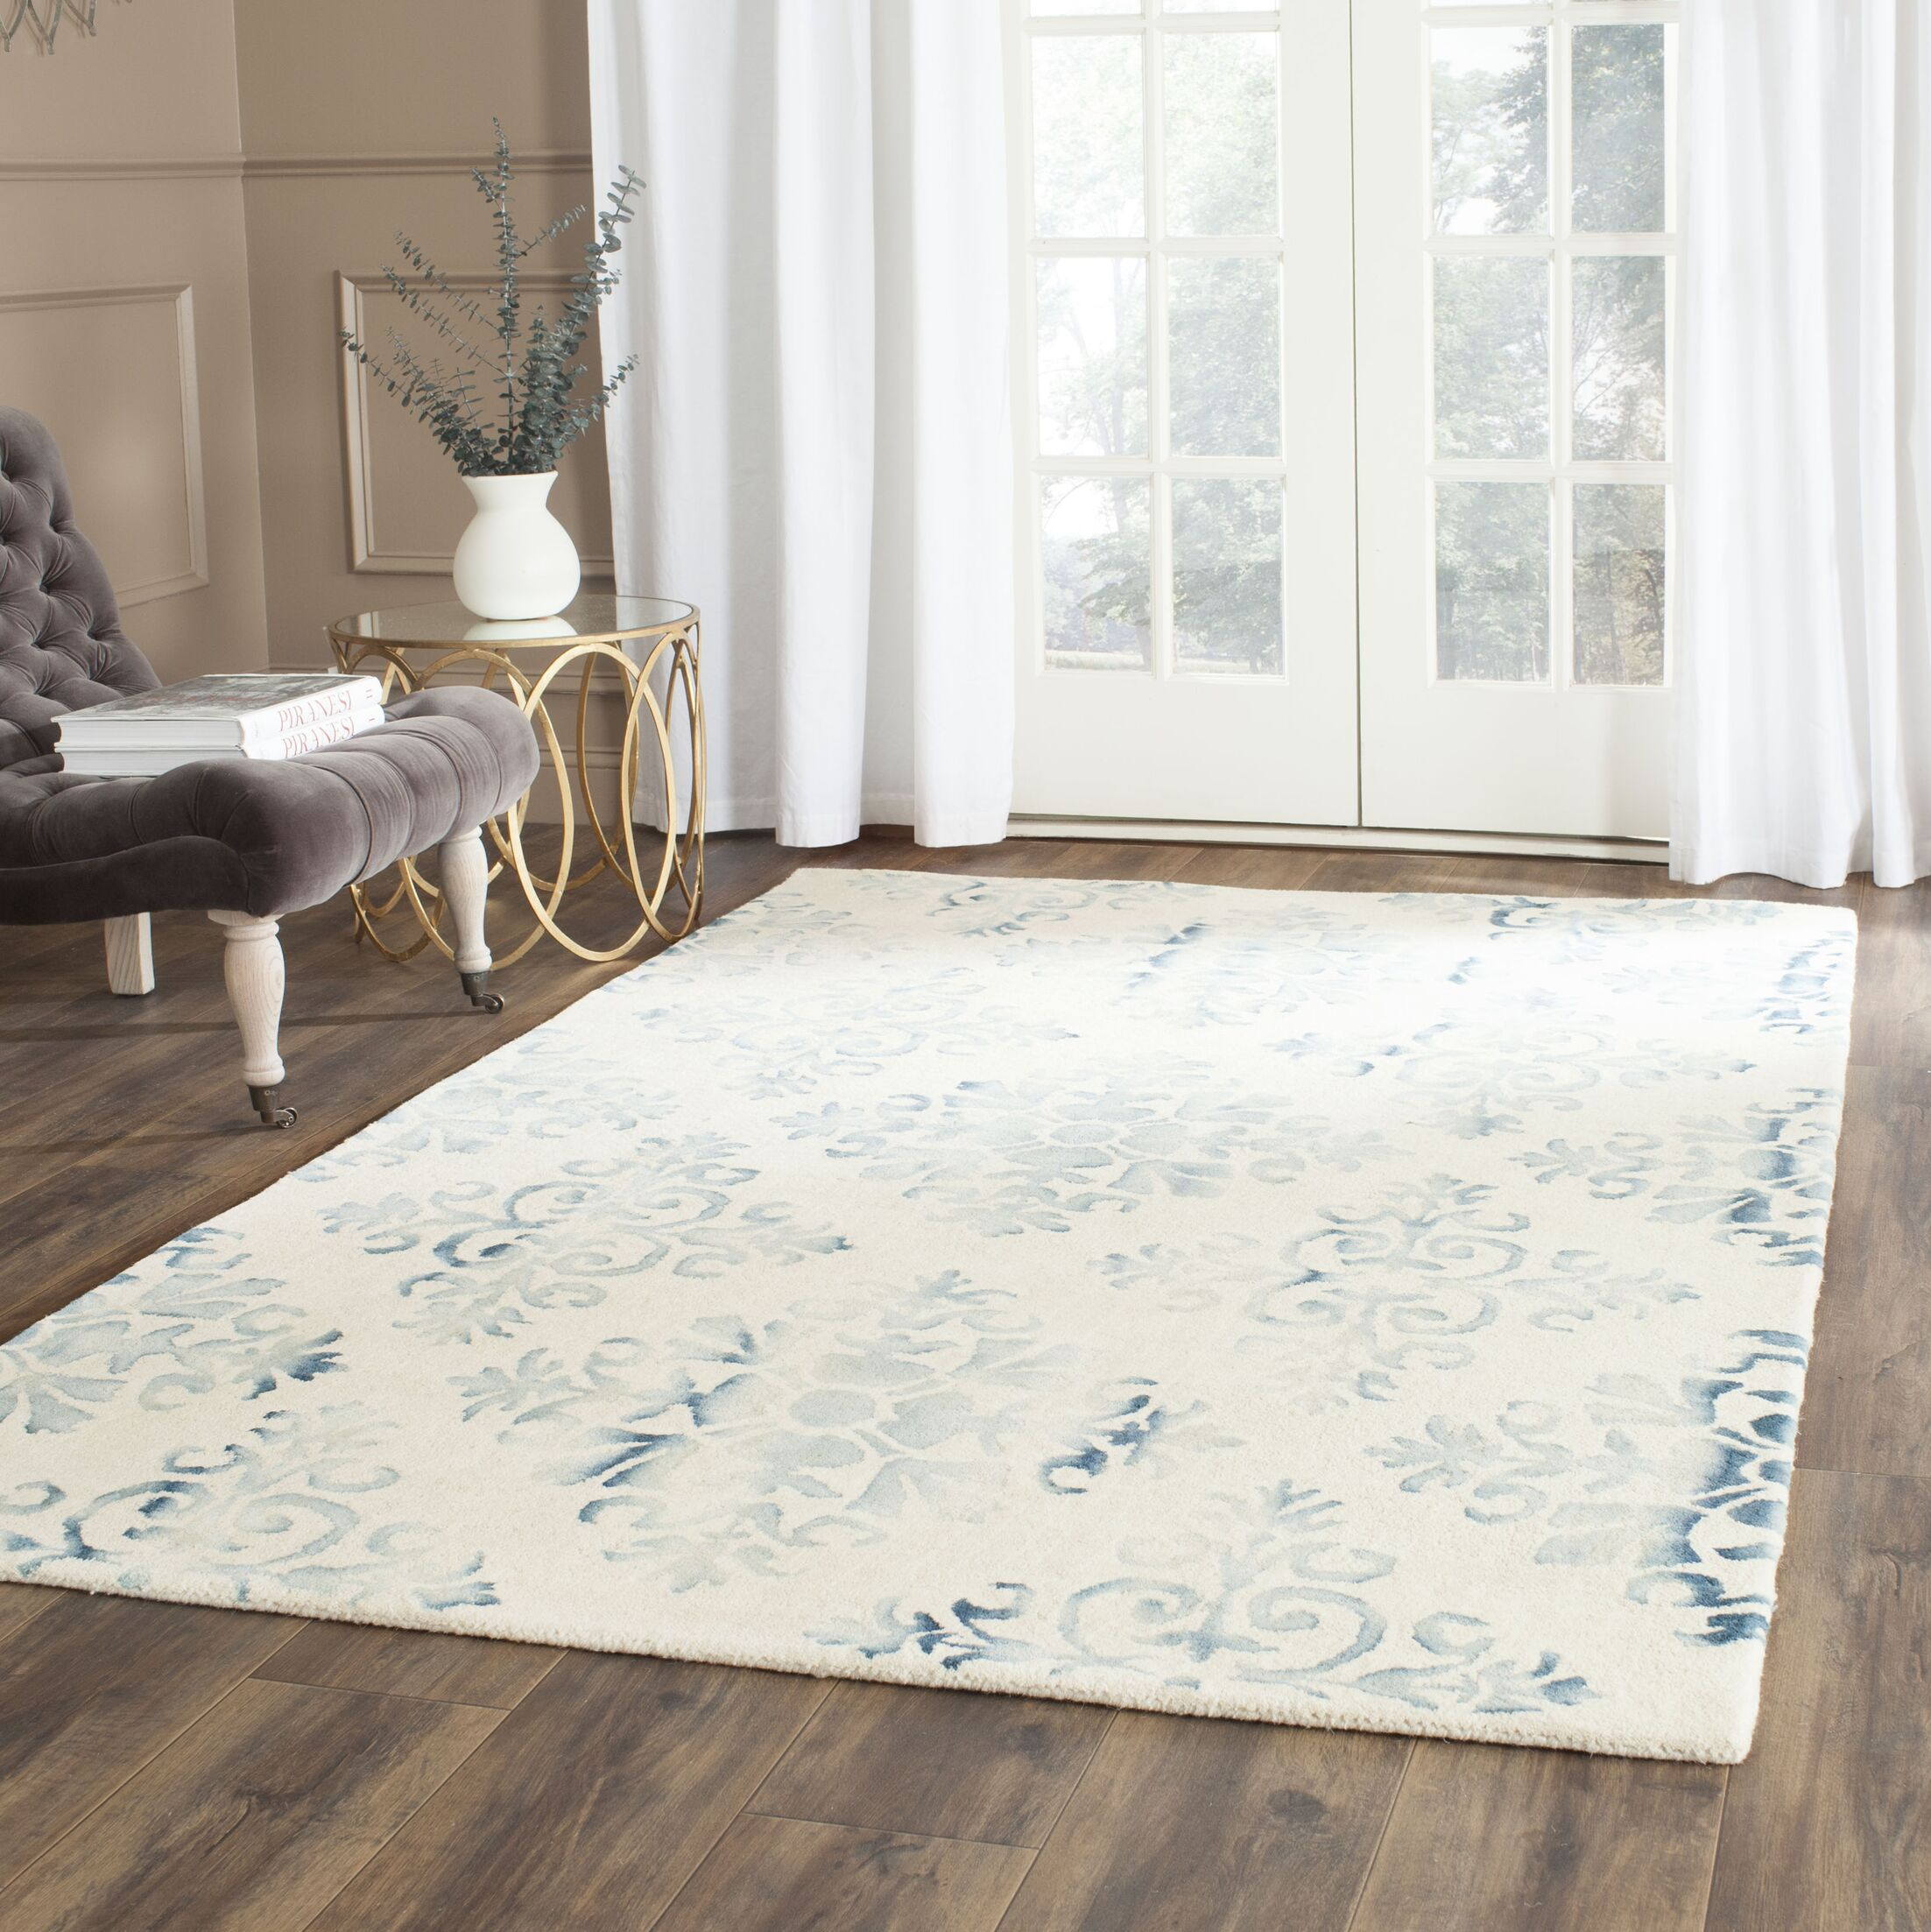 Carter Hand-Tufted Ivory/Light Blue Area Rug Rug Size: Rectangle 3' x 5'